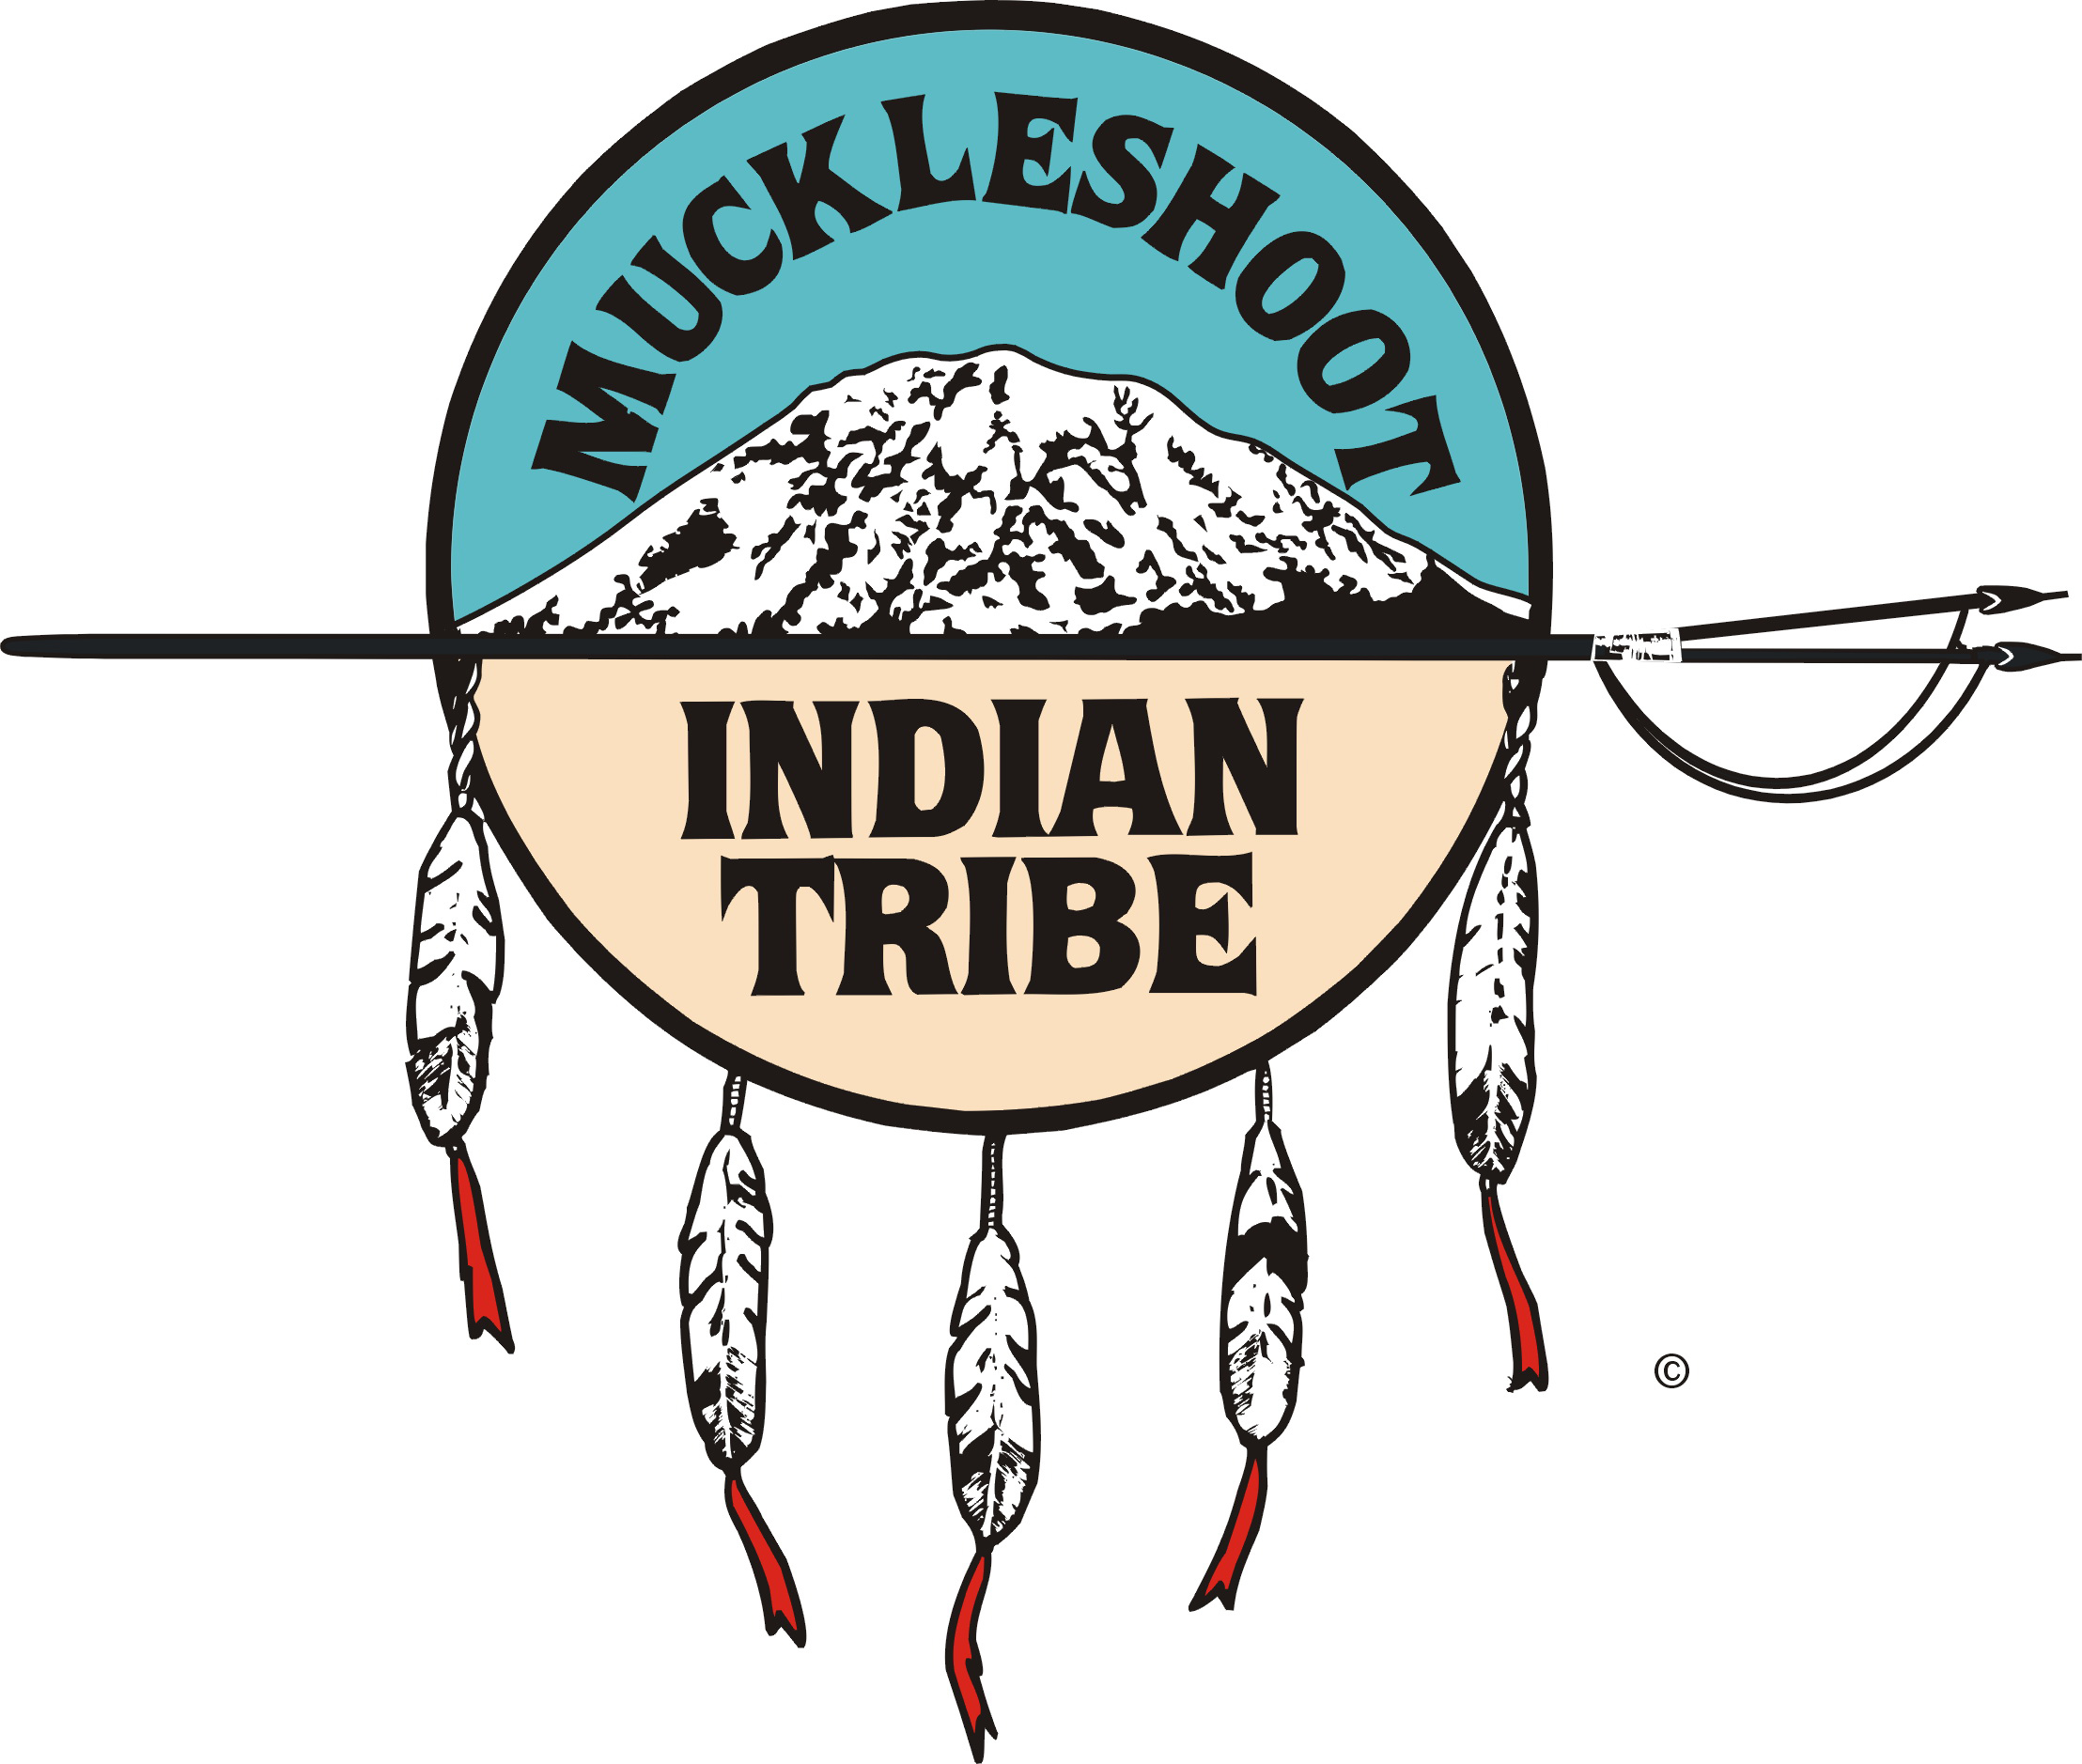 Muckleshoot_indian_tribe.jpg